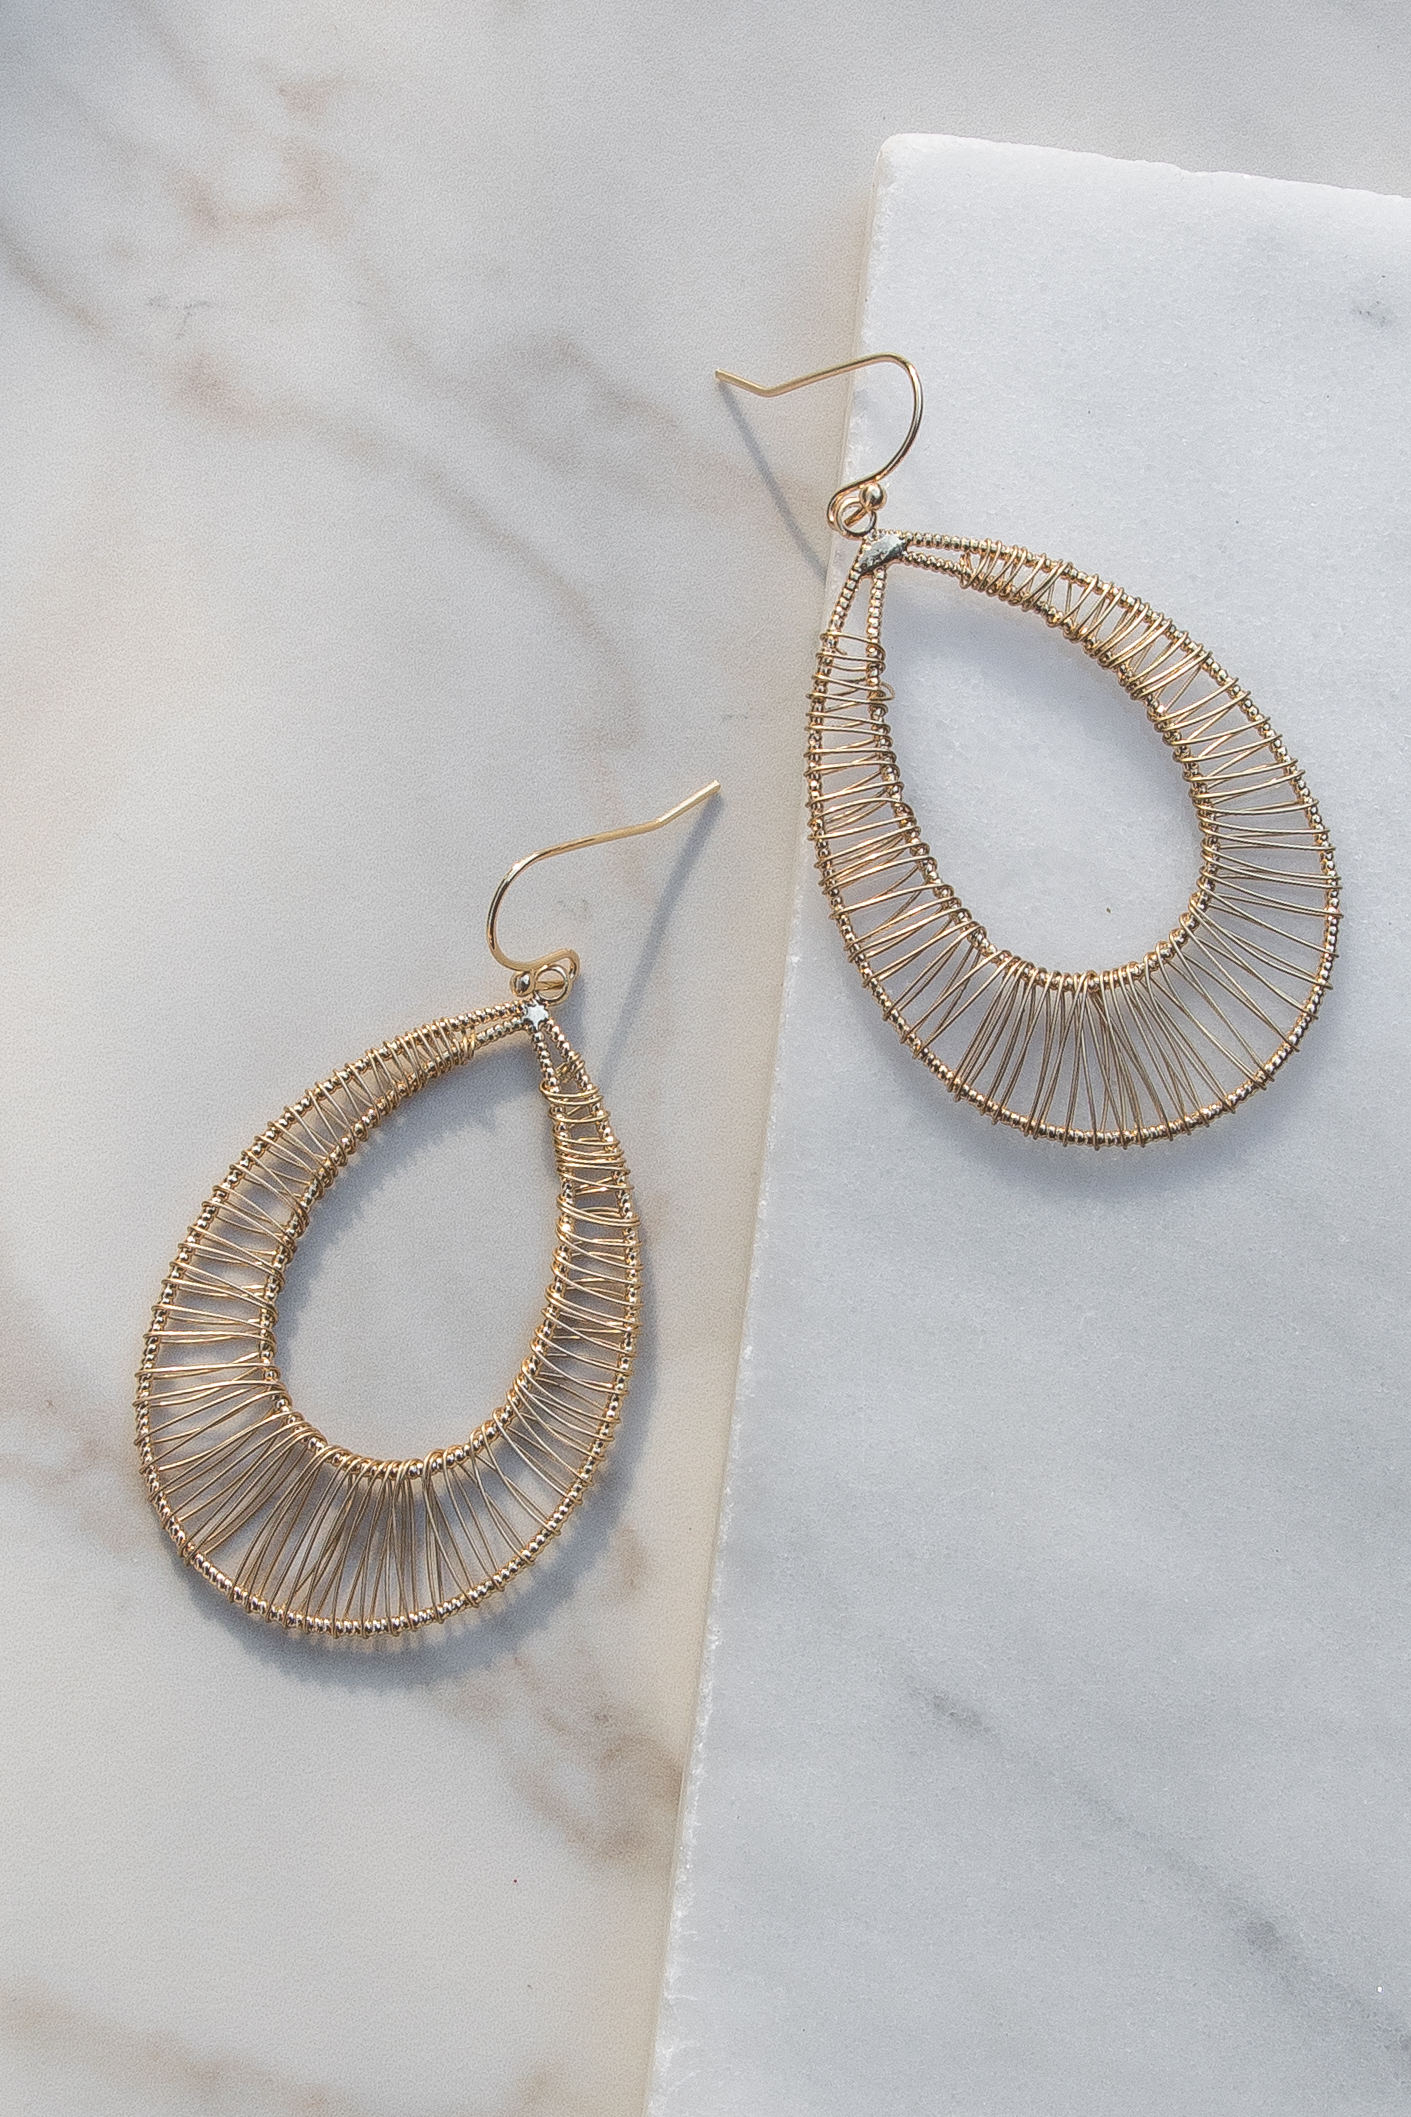 Gold Teardrop Earrings with Wire Wrapped Details